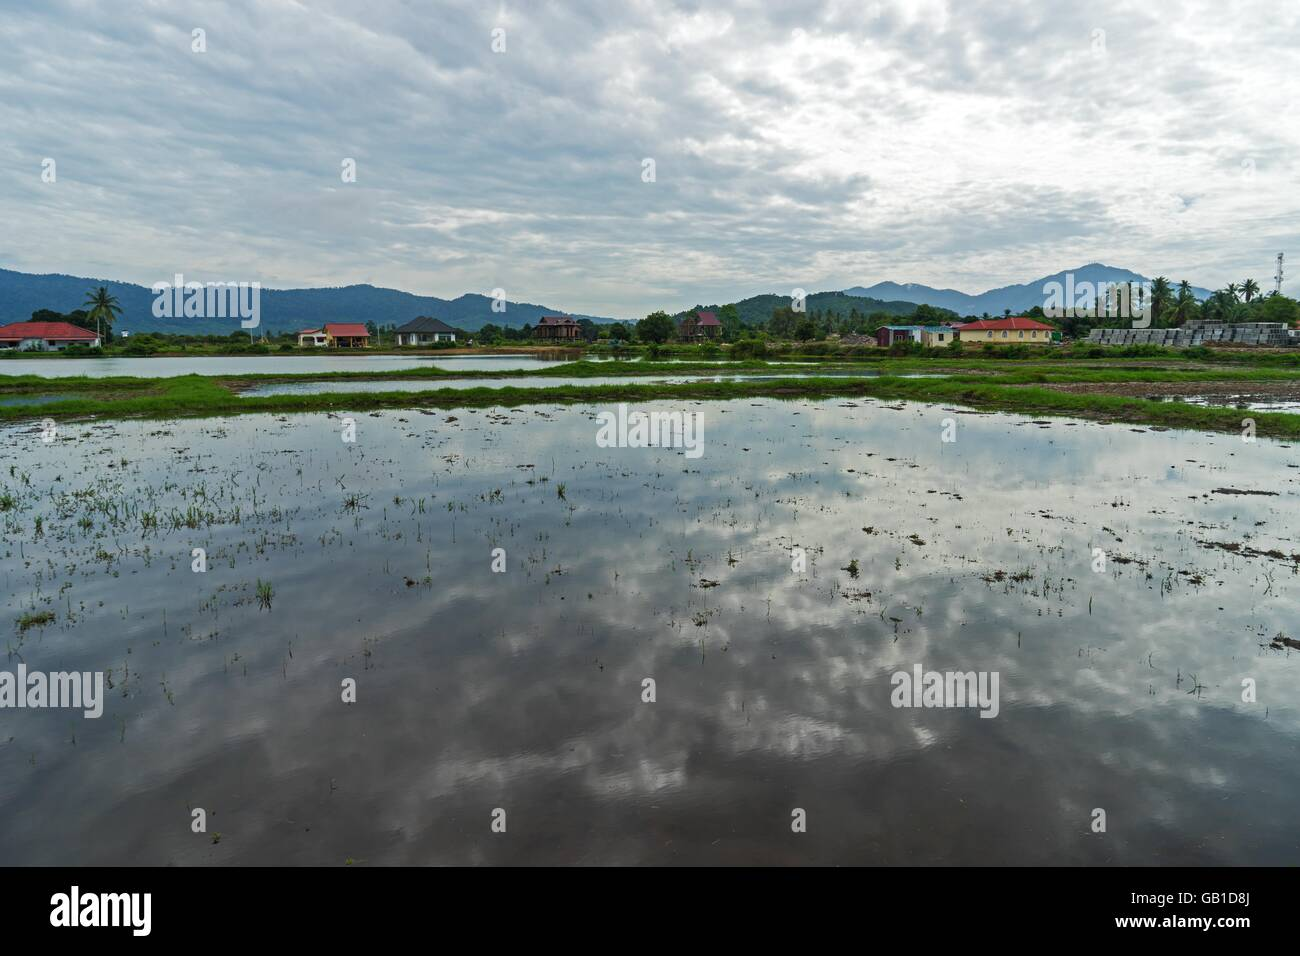 Flooded paddy fields in Langkawi, Malaysia Holiday background - Stock Image